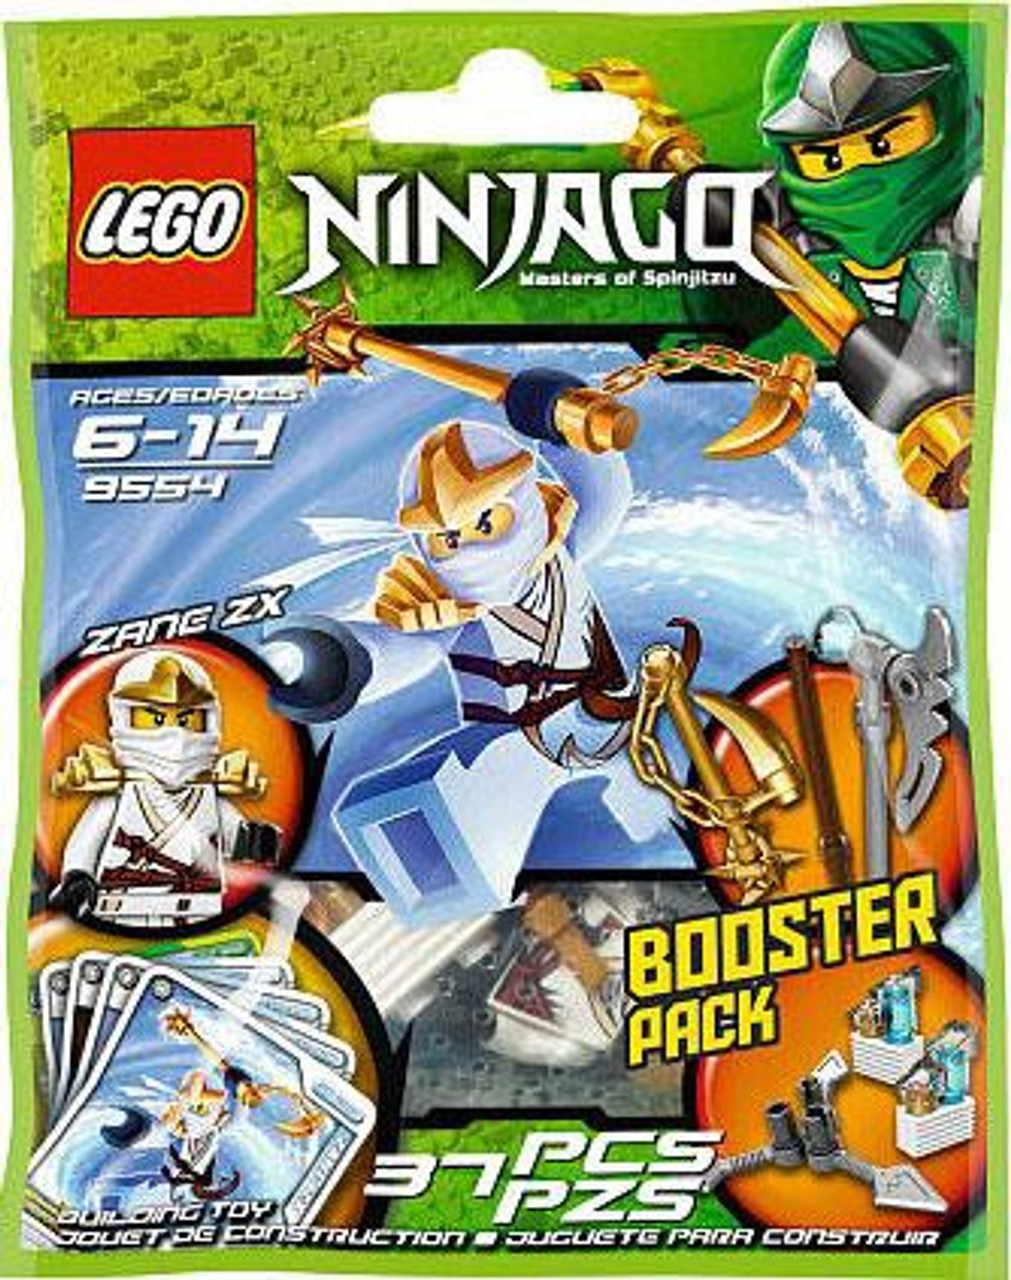 LEGO Ninjago Spinjitzu Spinners Mini Set #9554 [Bagged]